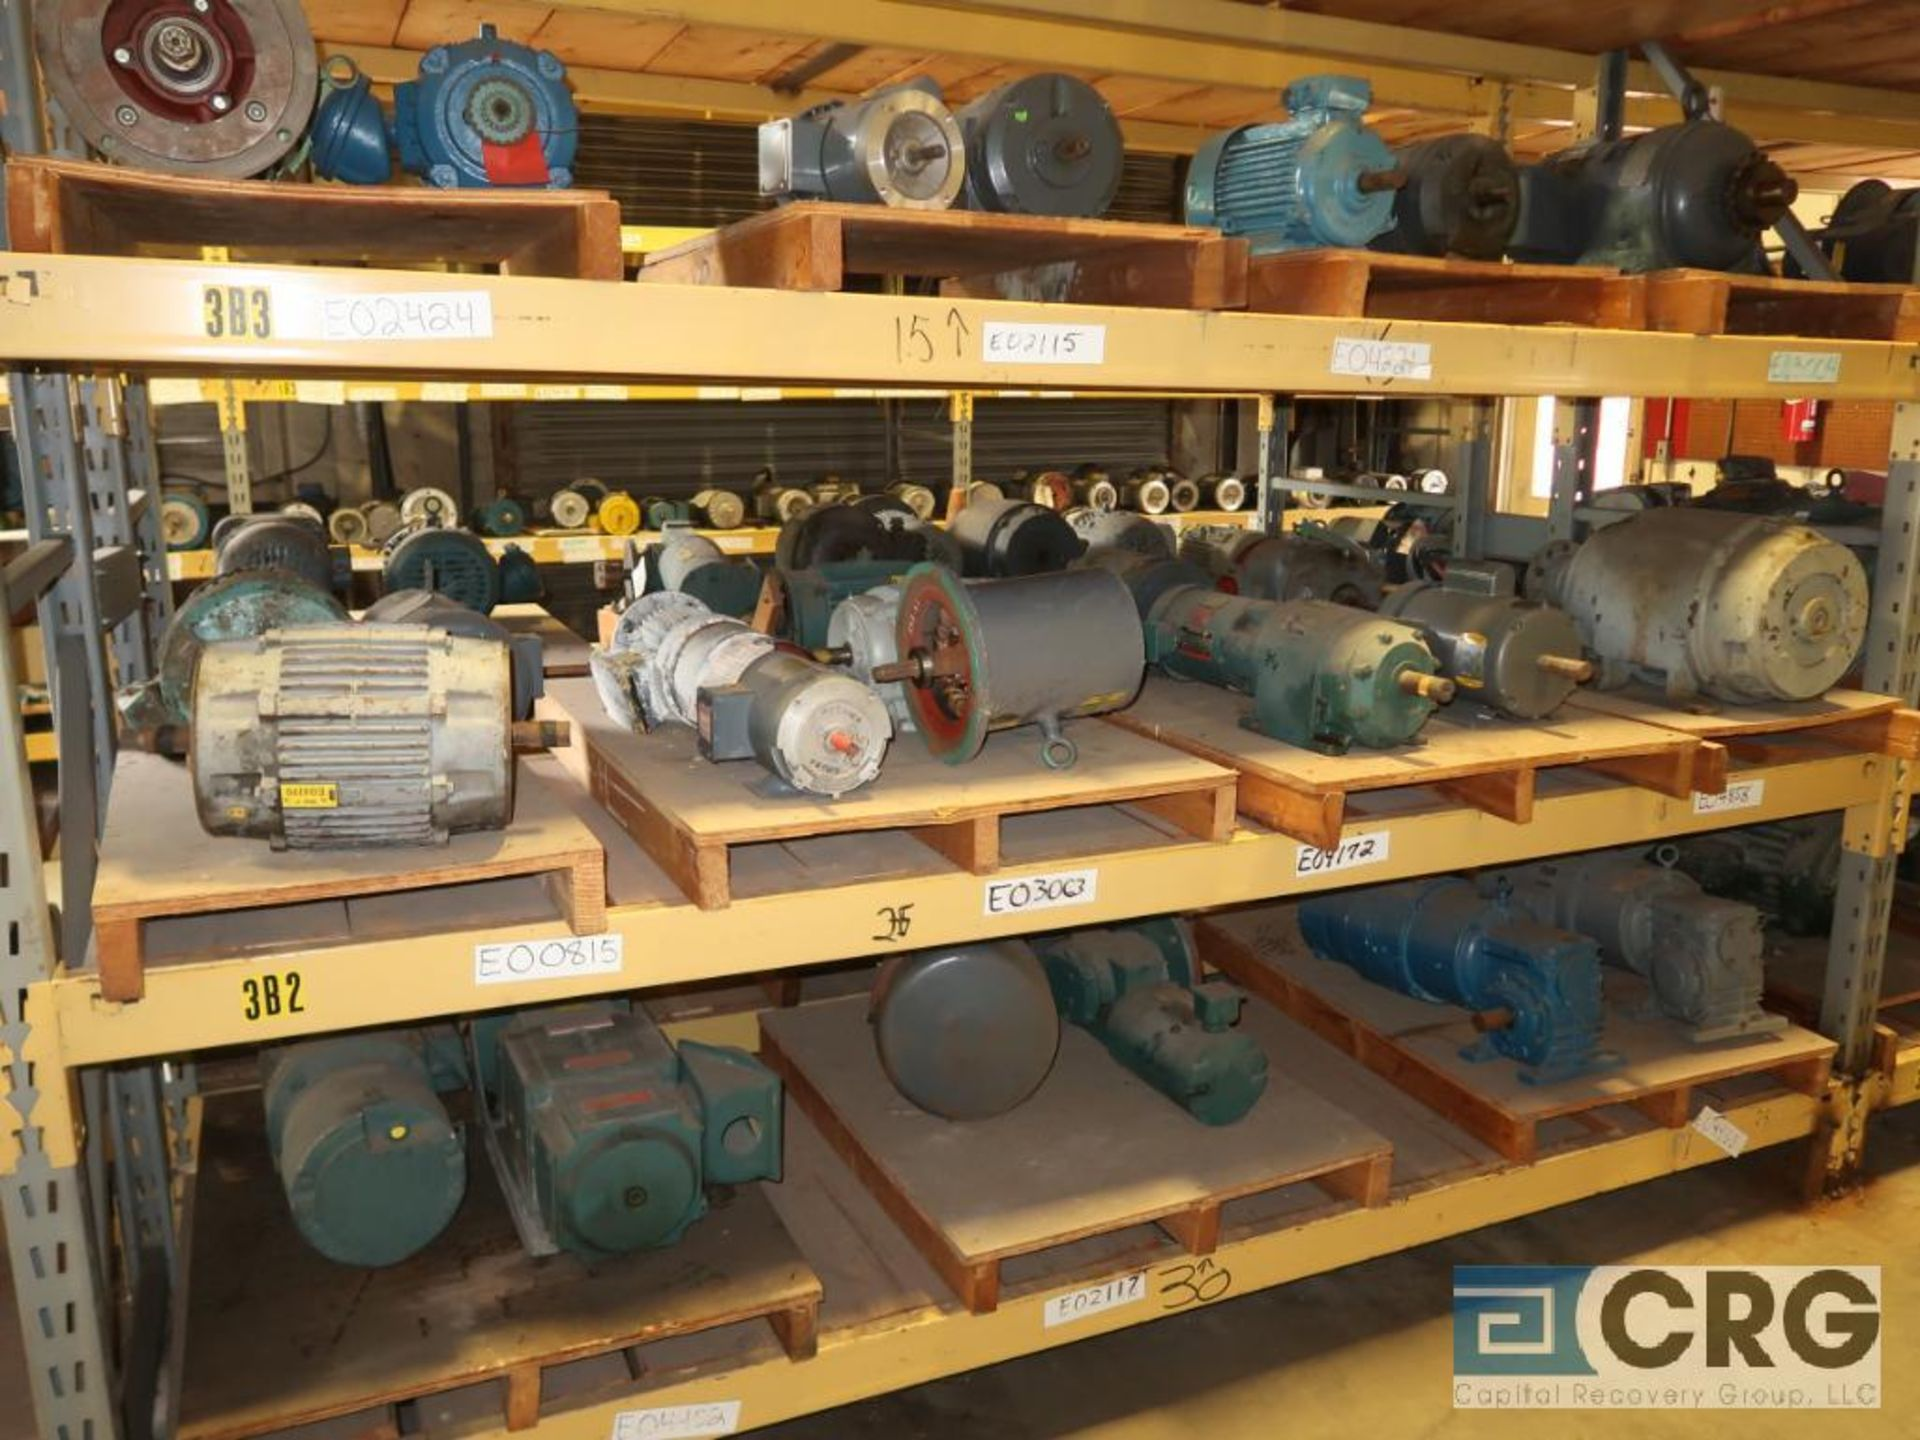 Lot of (63) assorted 5 HP and smaller motors on (8) shelves (Motor Building) - Image 2 of 3